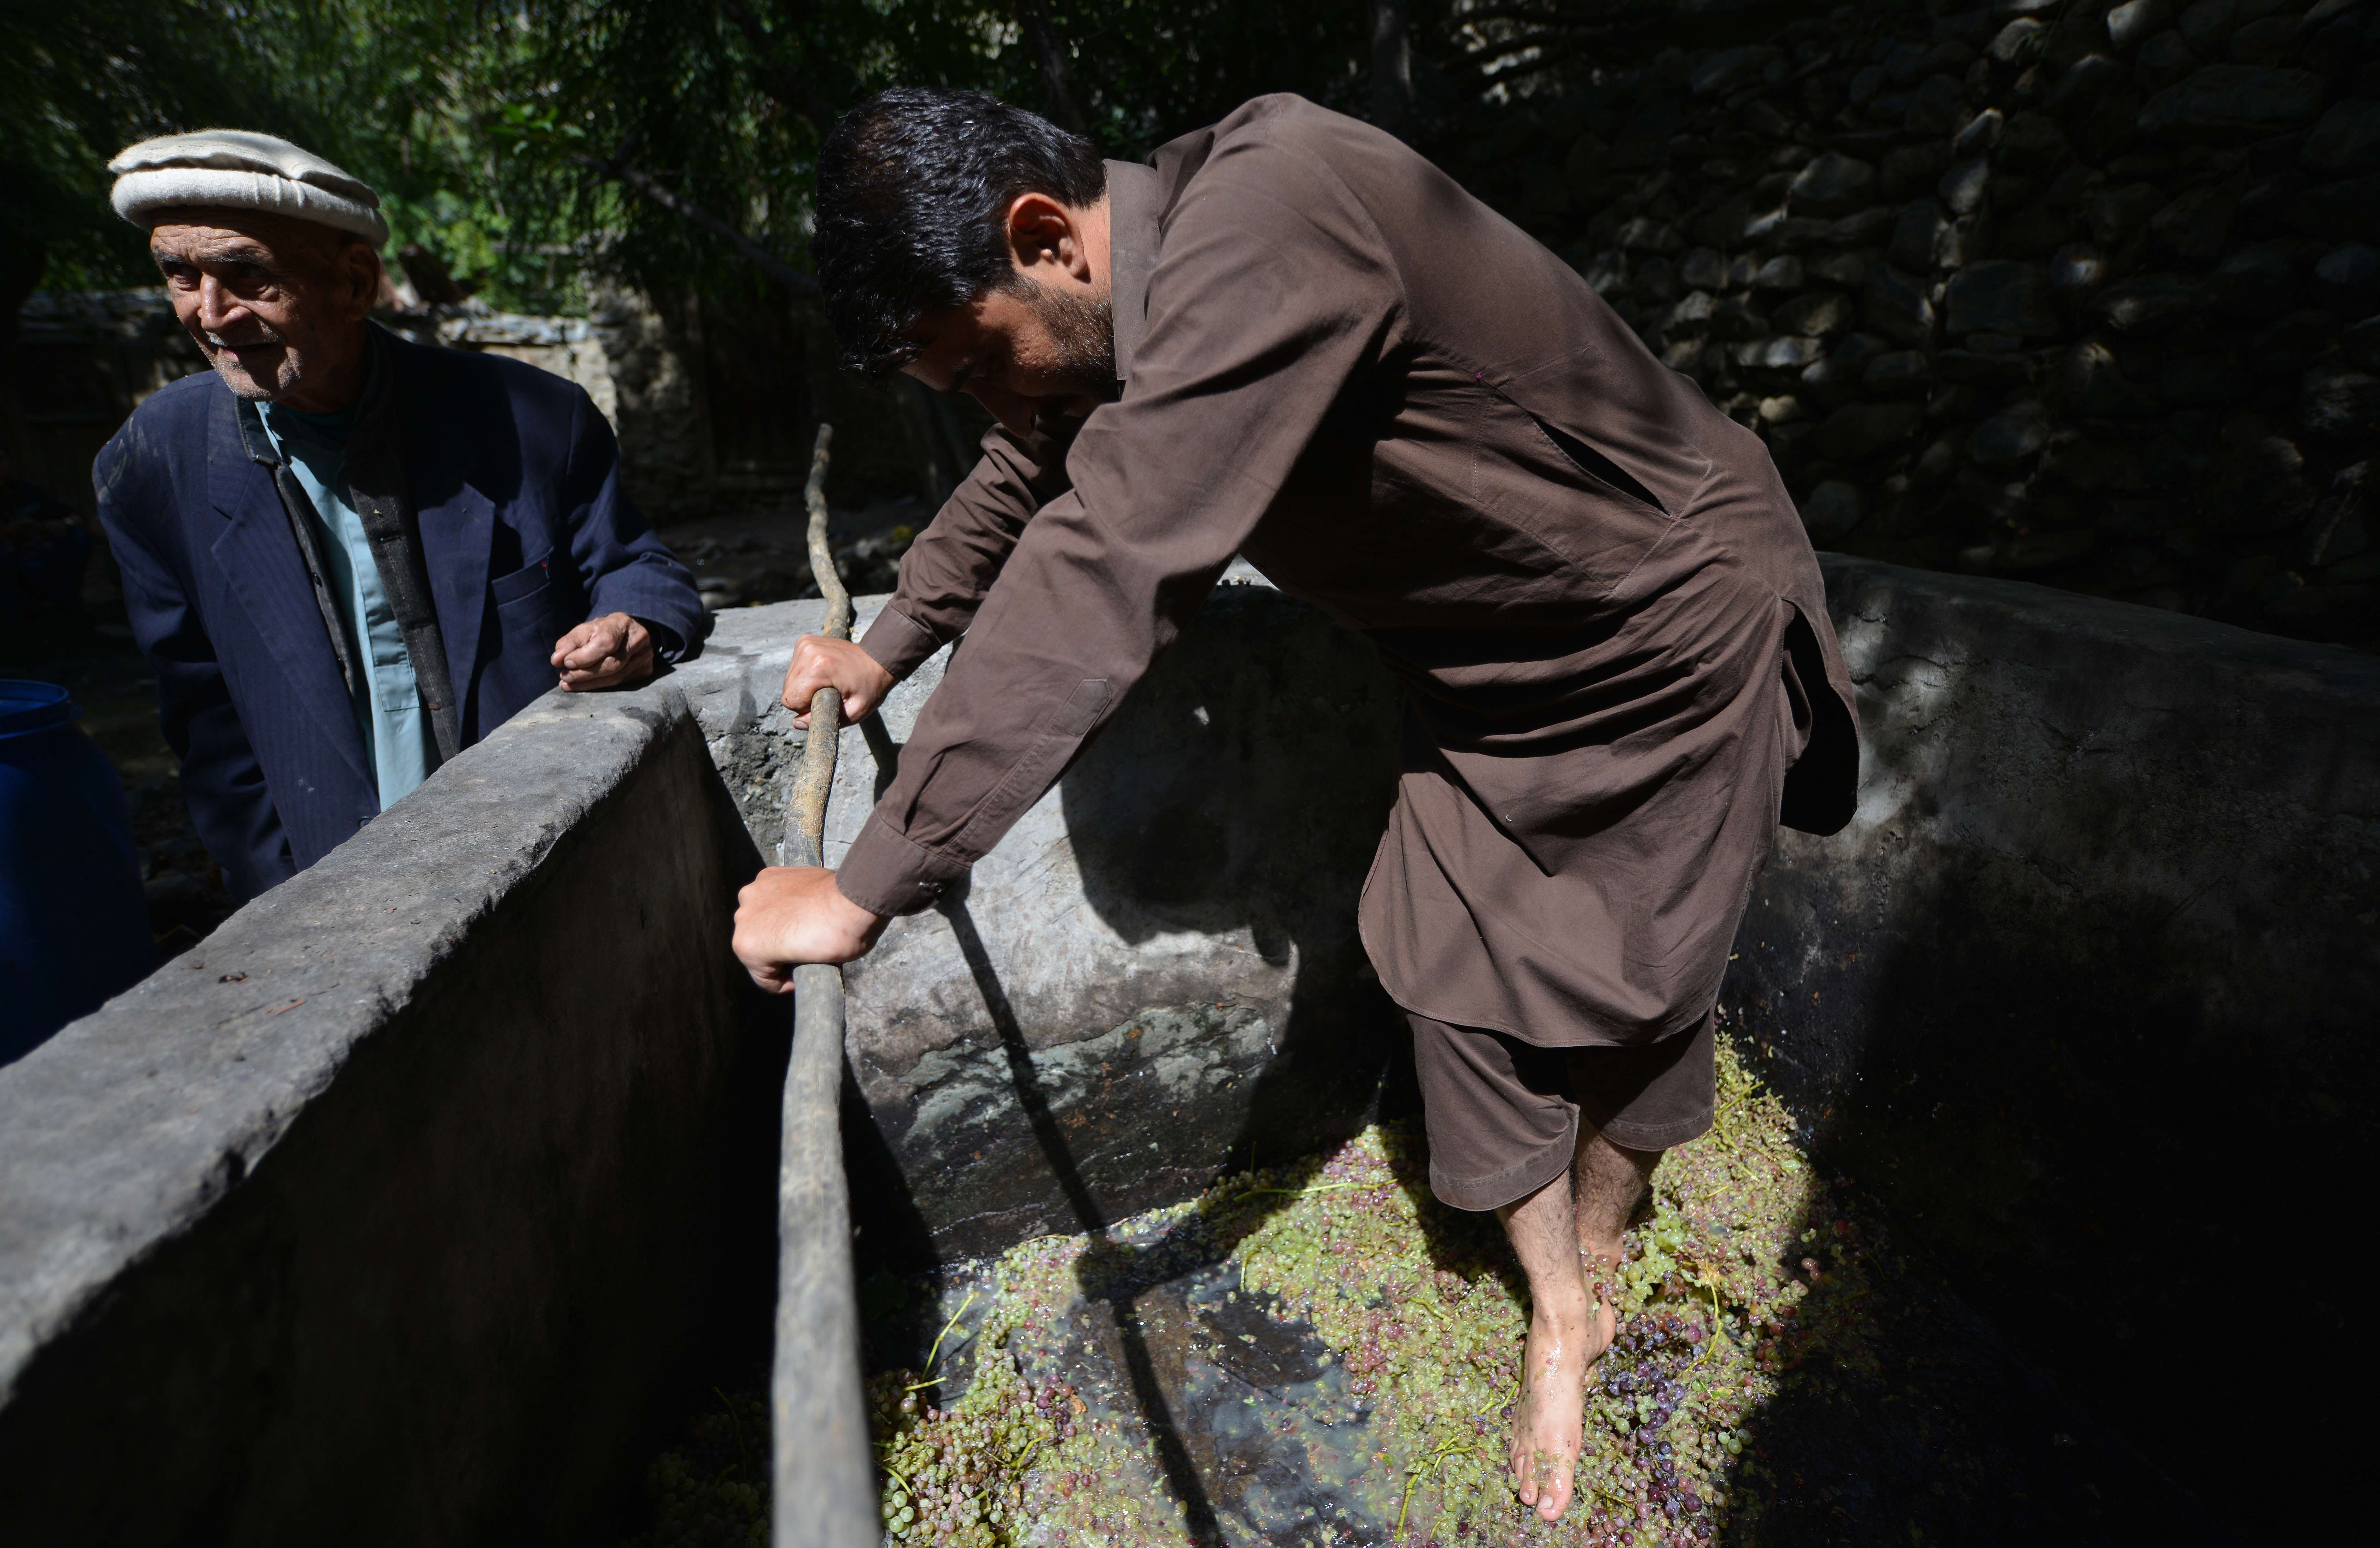 In this photograph taken on September 27, 2015, a local resident uses his feet to crush freshly picked grapes in a cement tank for brewing wine in a garden in the remote village of Sher Qilla in Punyal valley in northern Pakistan.